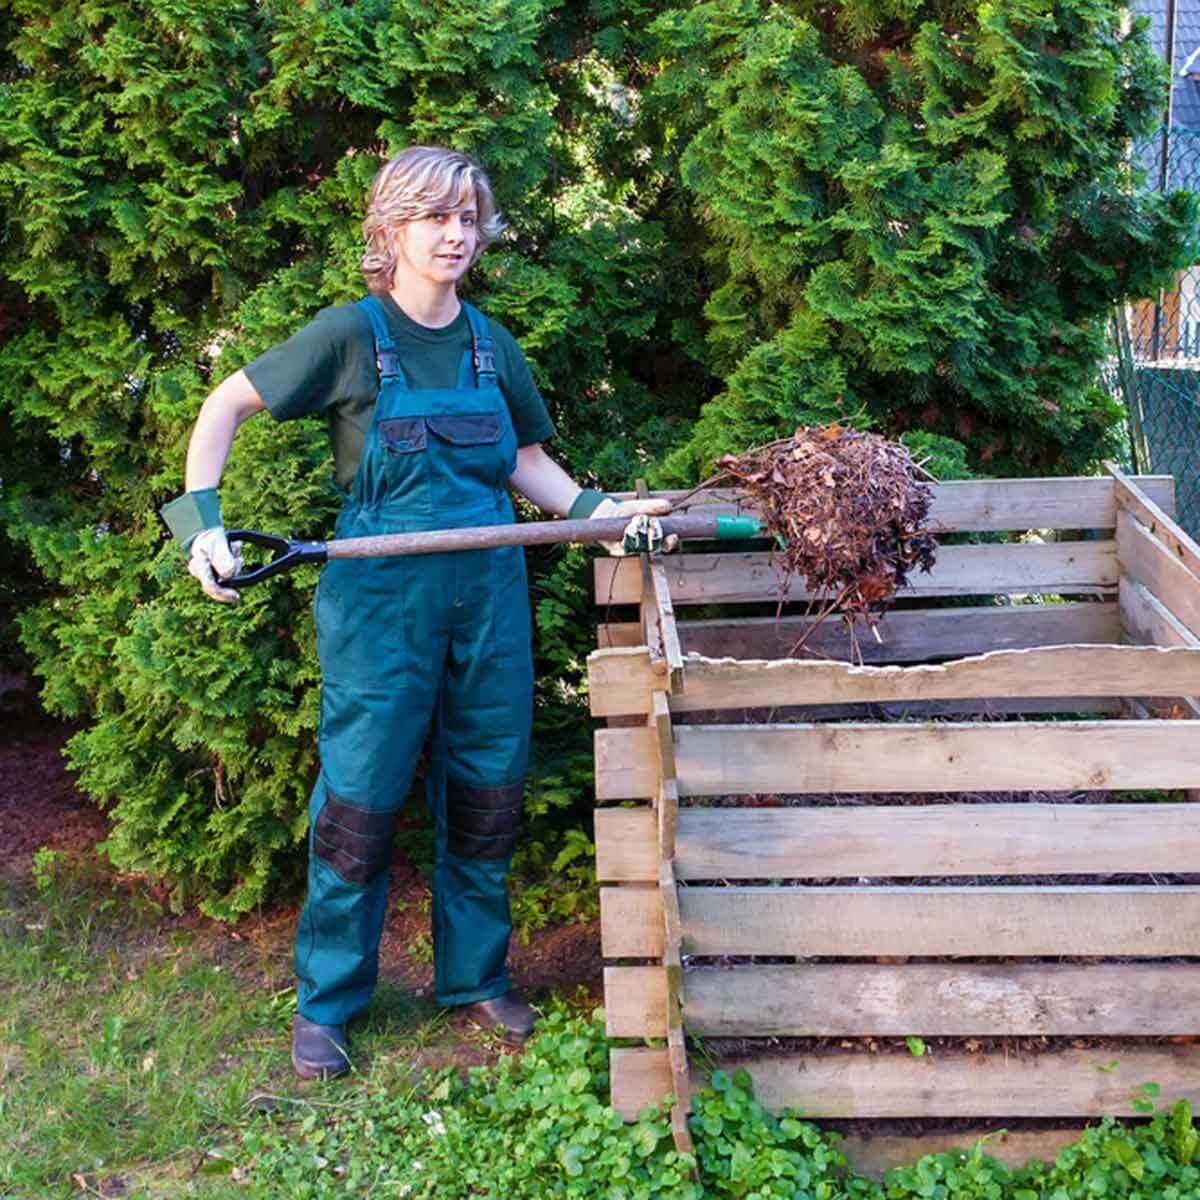 lady scooping compost